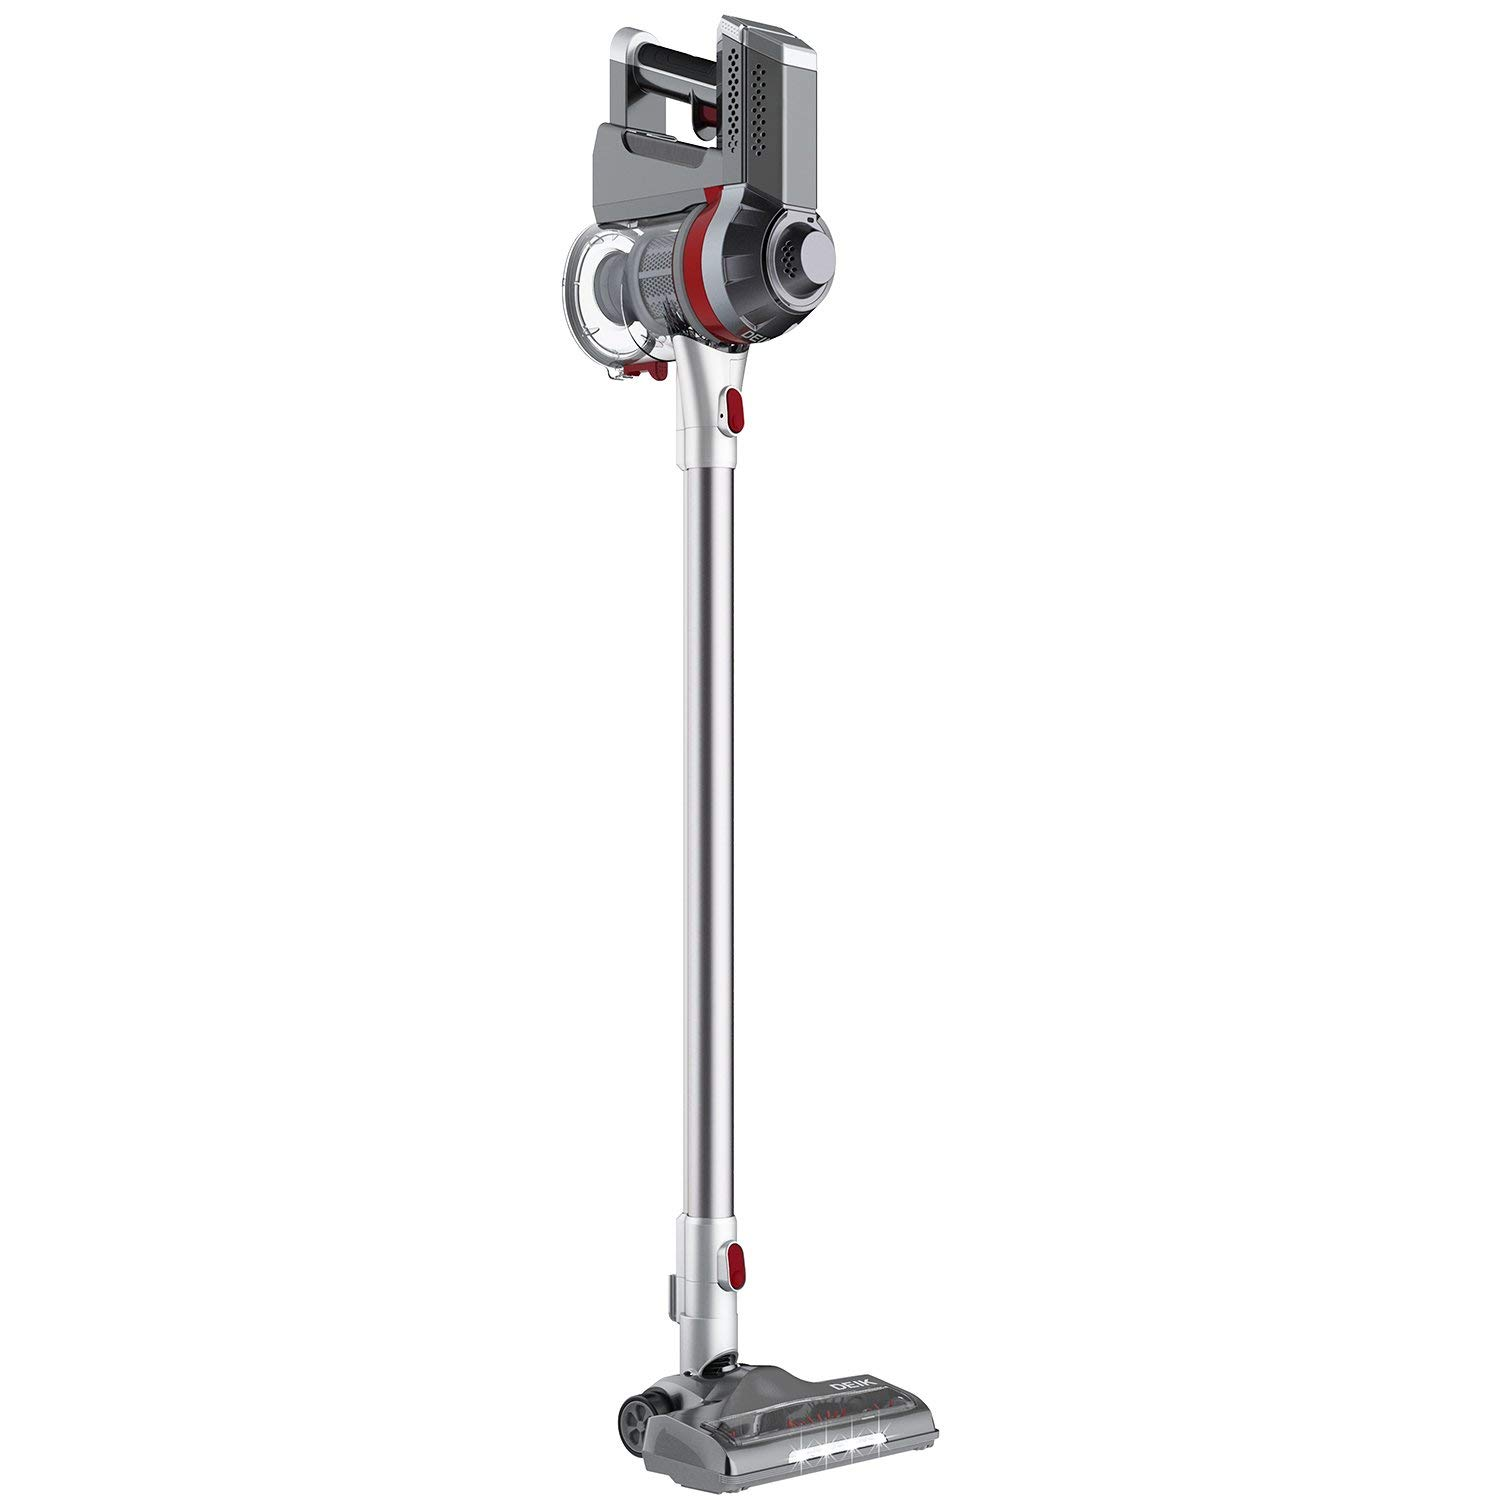 Deik Cordless Vacuum Cleaner, Stick and Handheld Vacuum with Powerful Suction & Wall-Mount Silver   by Deik